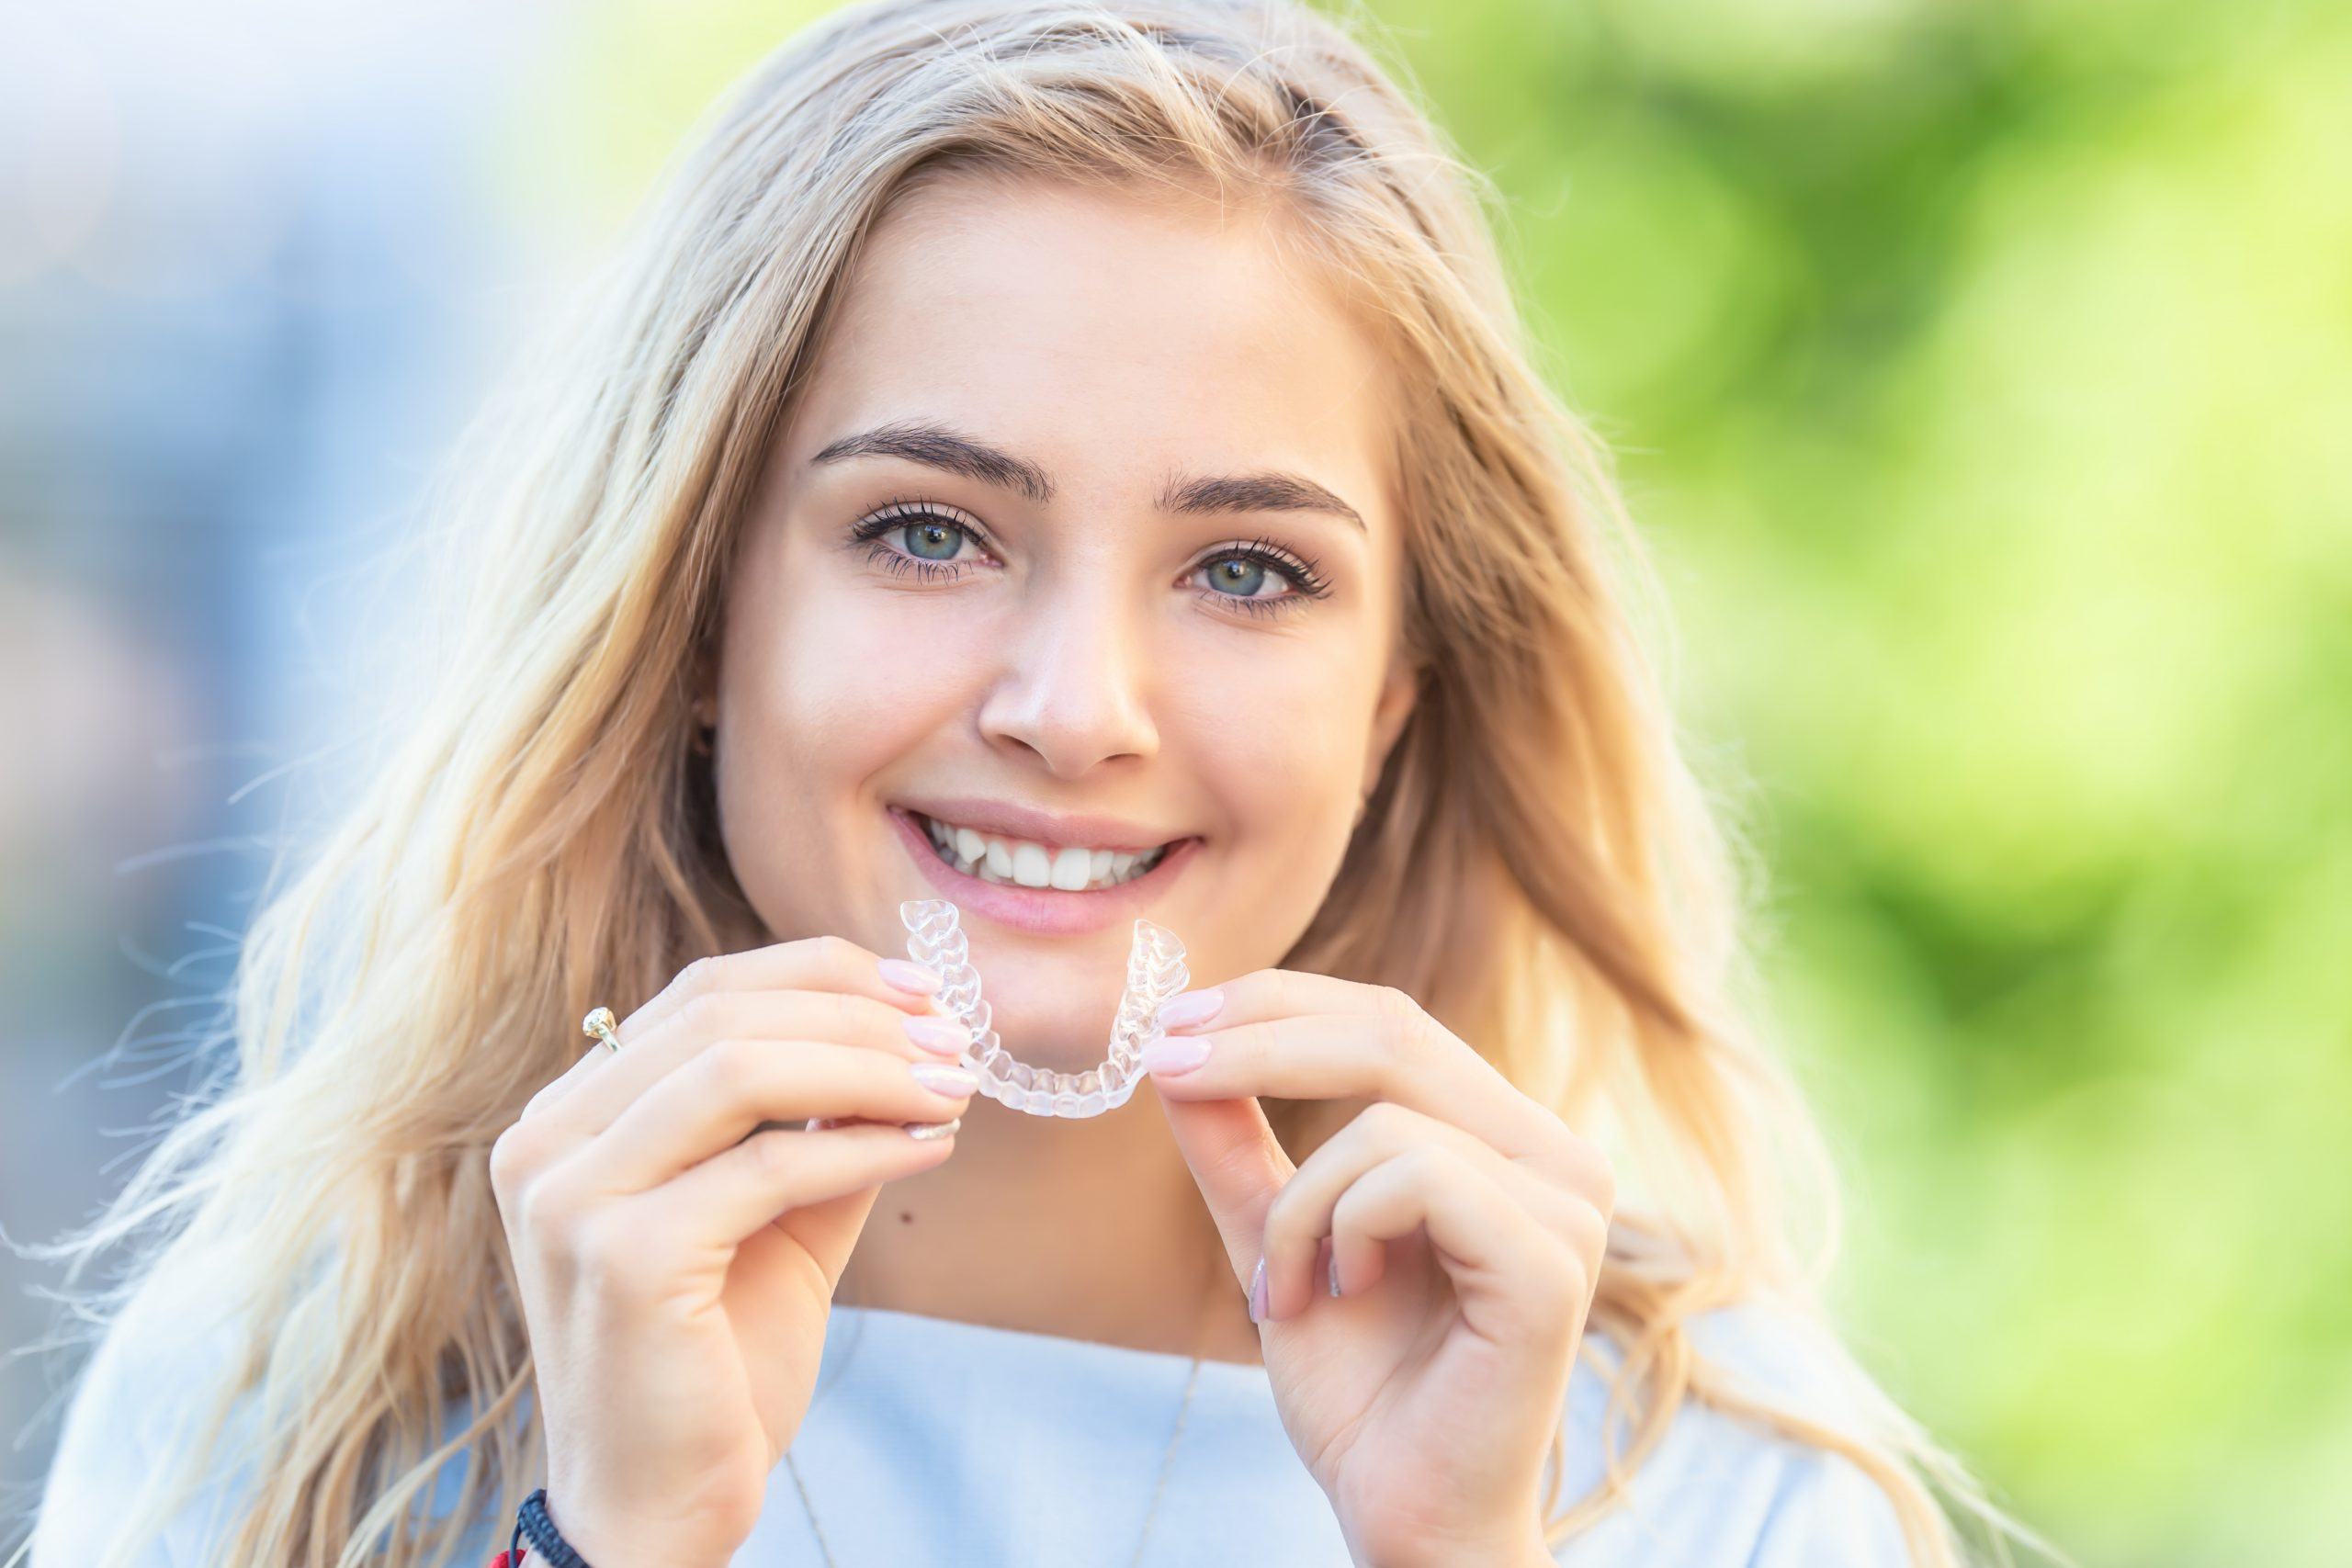 6 Invisalign Tips Every Orthodontic Patient Should Know